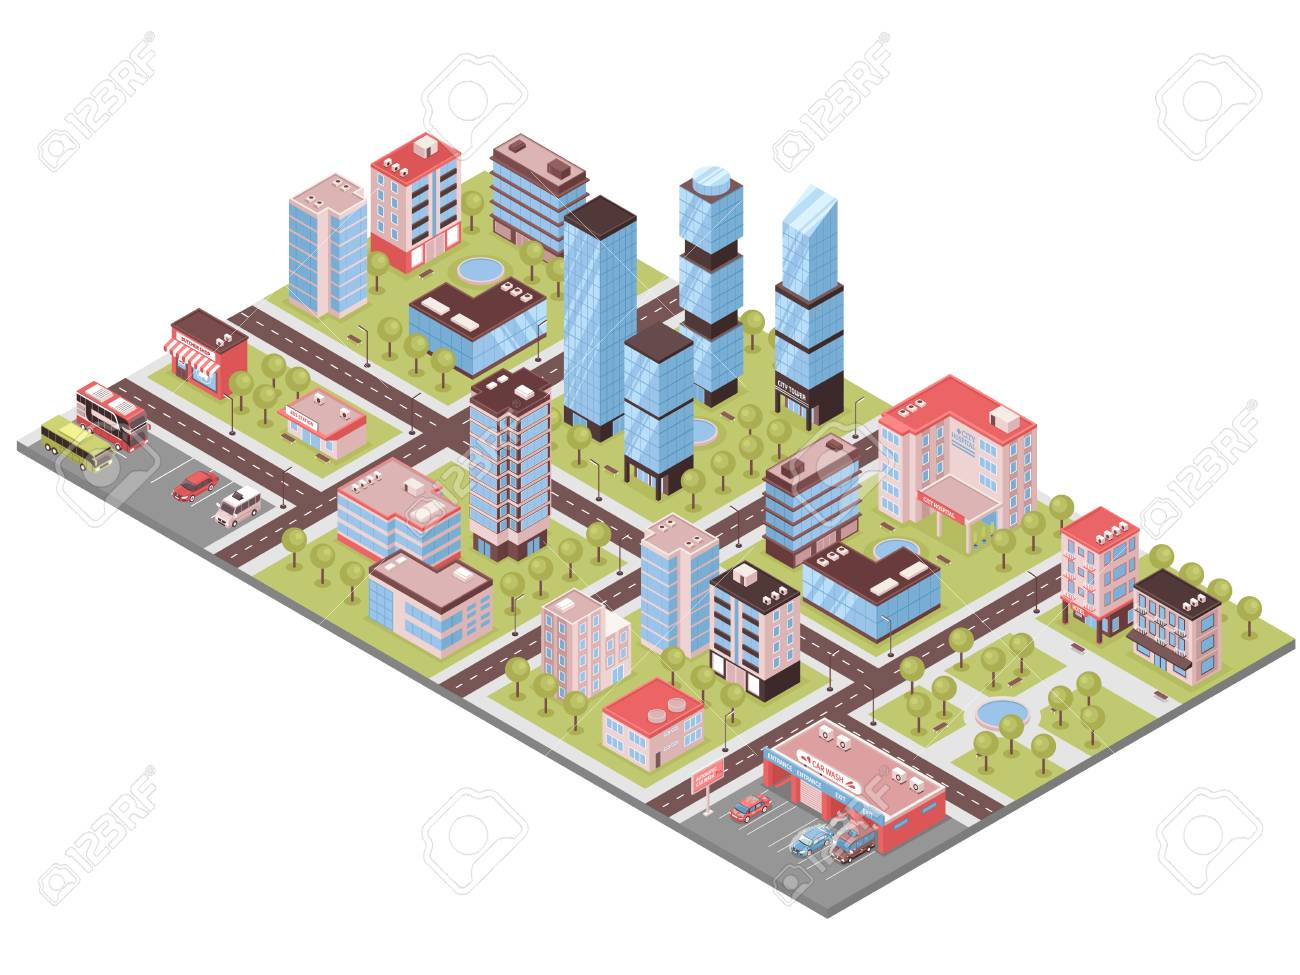 City district isometric composition with business center office towers auto repair parking lot stores buildings vector illustration - 100253526